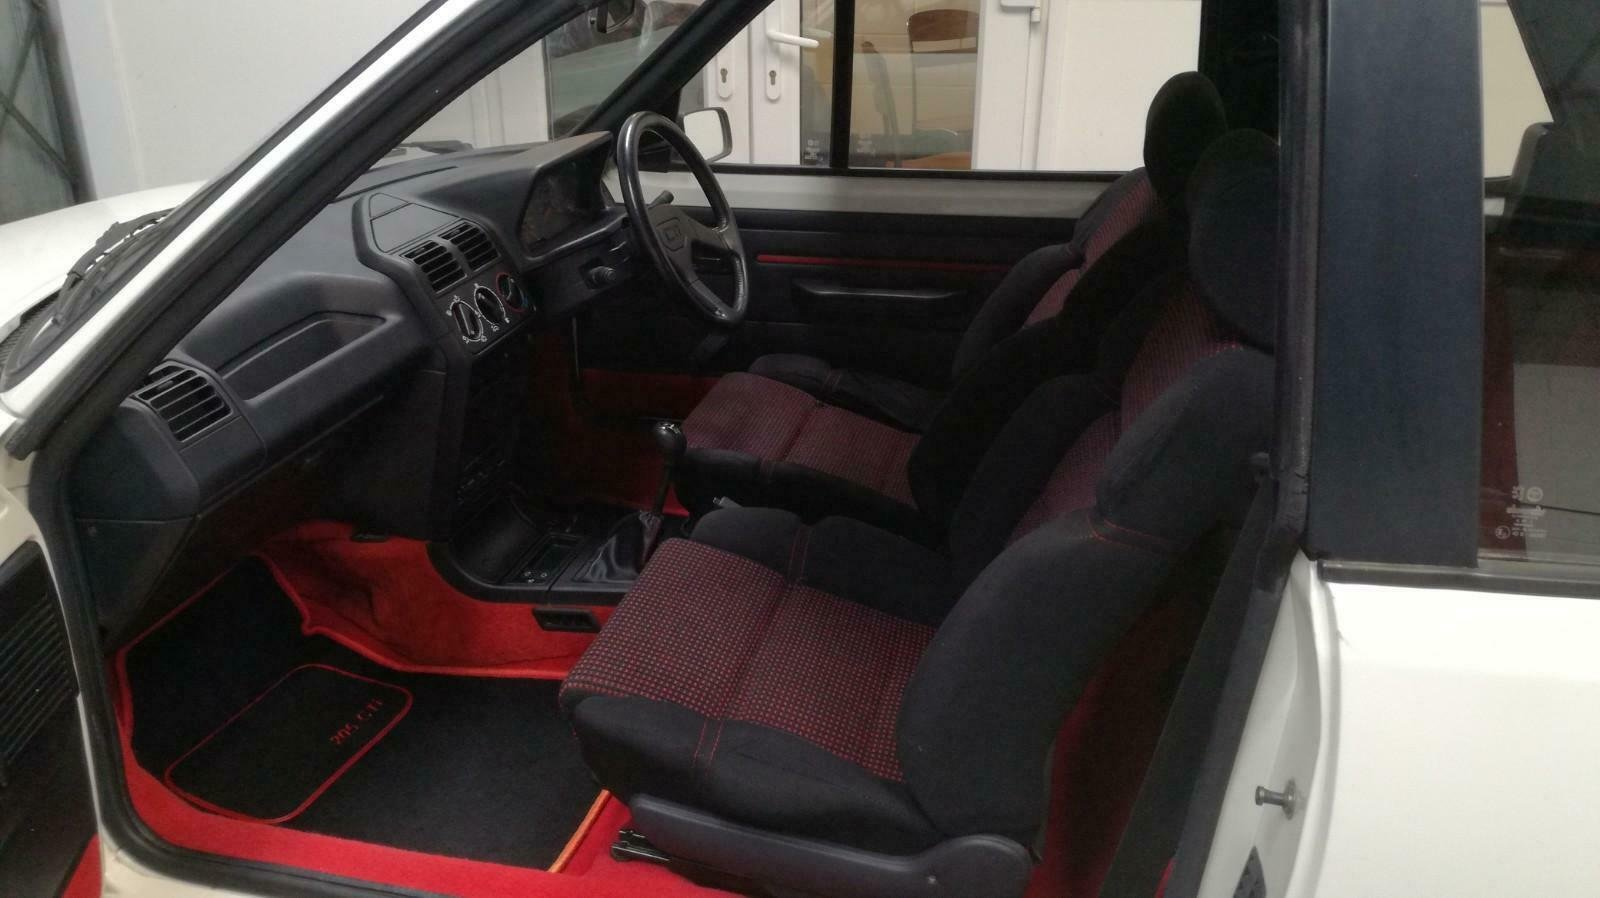 Peugeot 205 CTI 1.6  CABRIOLET 1992 For Sale (picture 6 of 6)